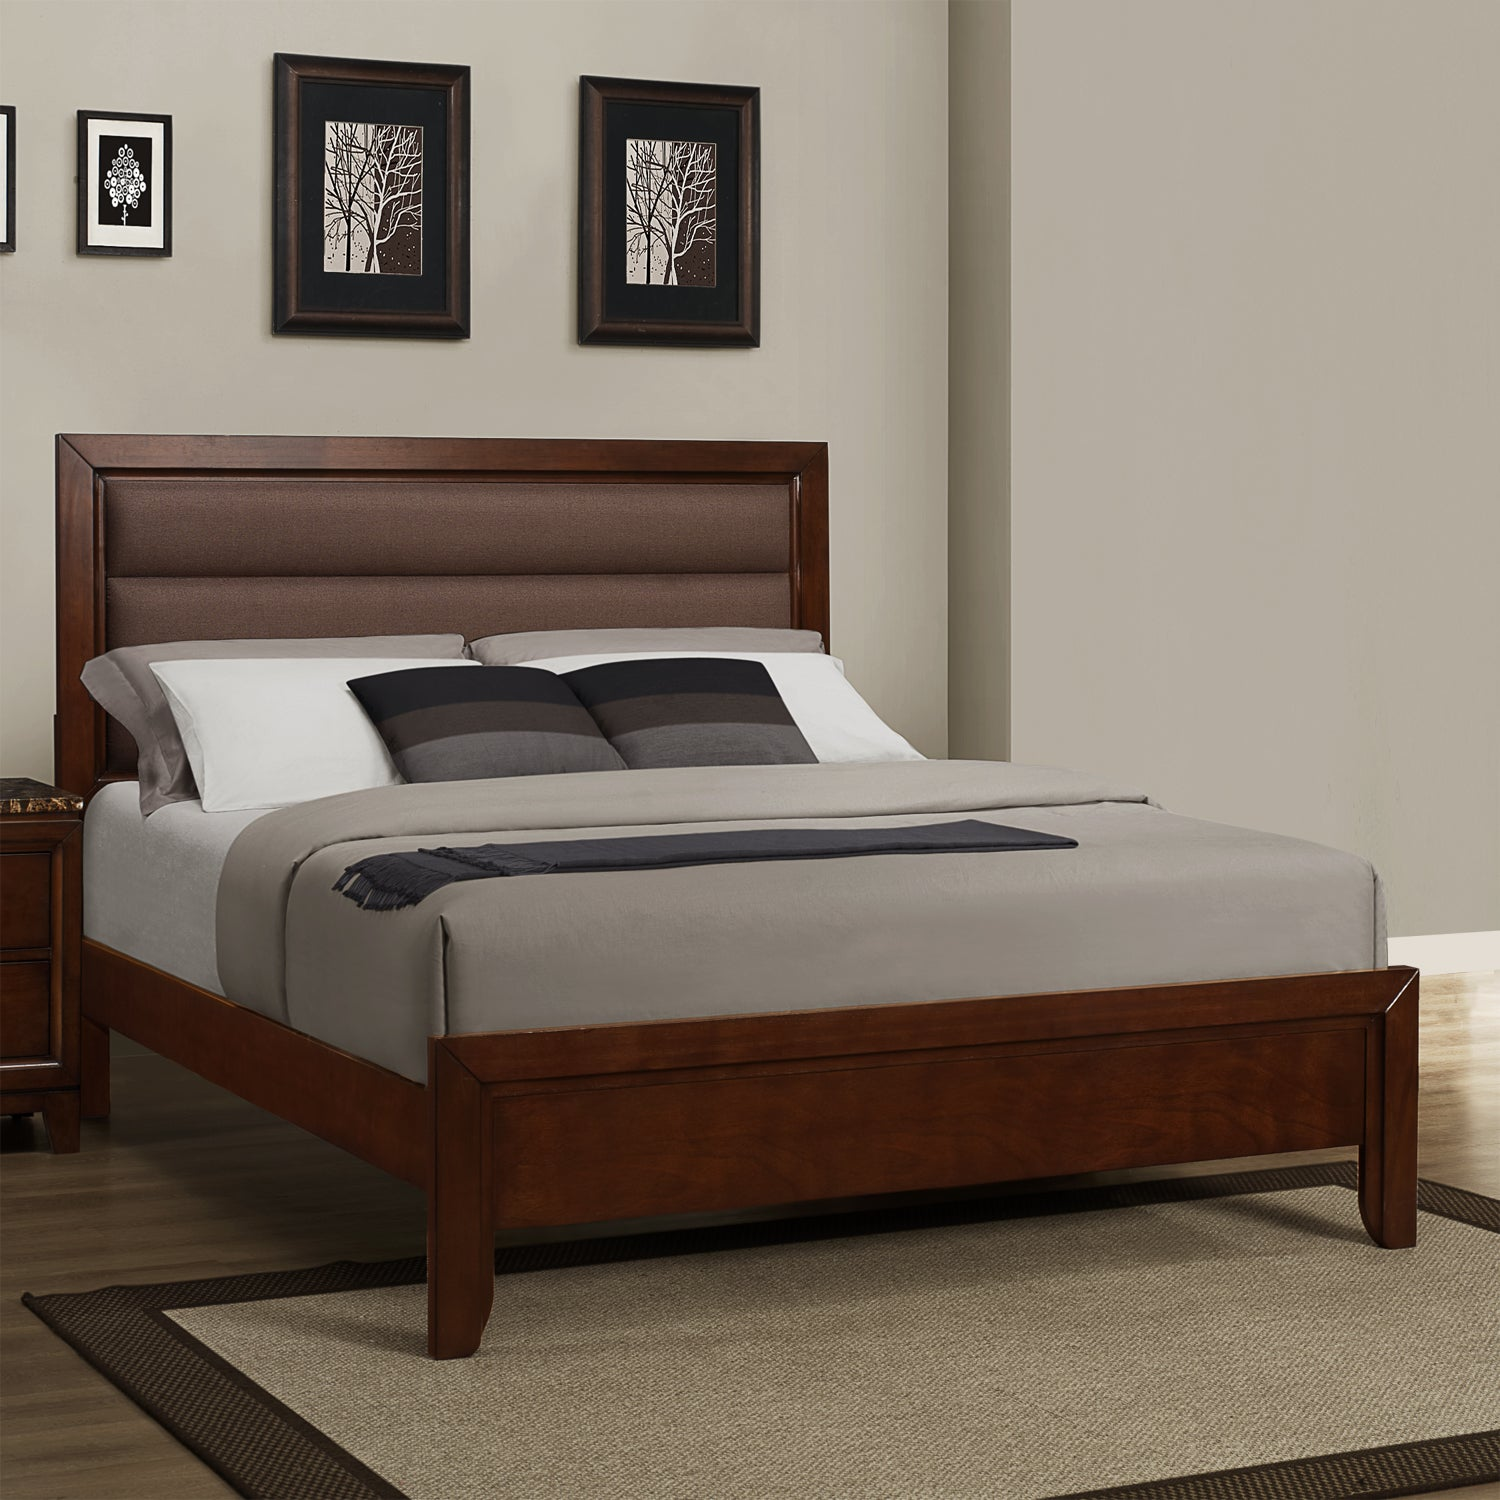 shop tribecca home amble warm cherry finish brown fabric padded king size bed free shipping. Black Bedroom Furniture Sets. Home Design Ideas